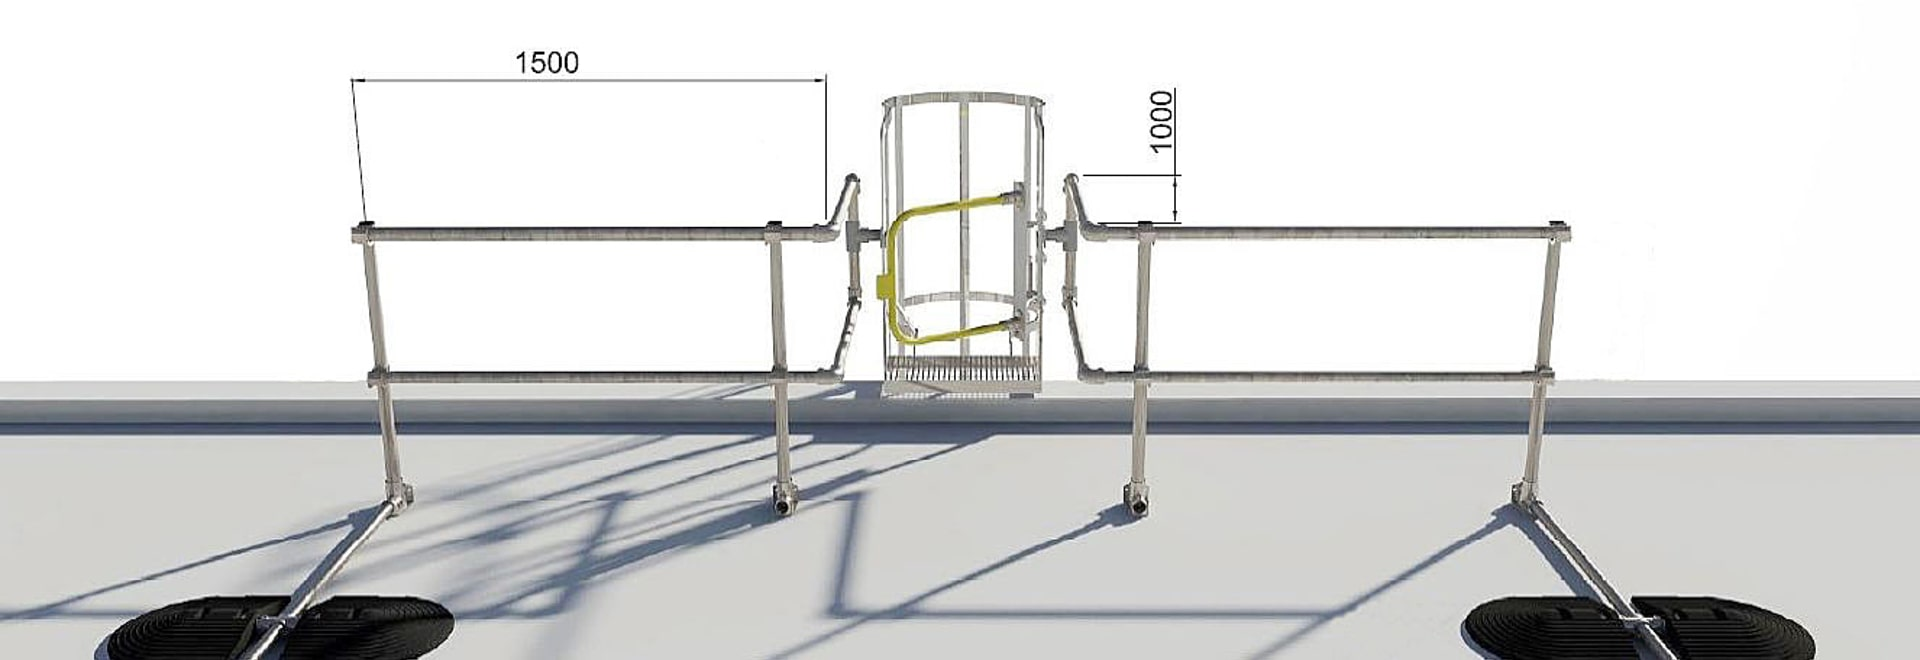 Guard Rail Kit for Ladder Access Points - New Product Launch